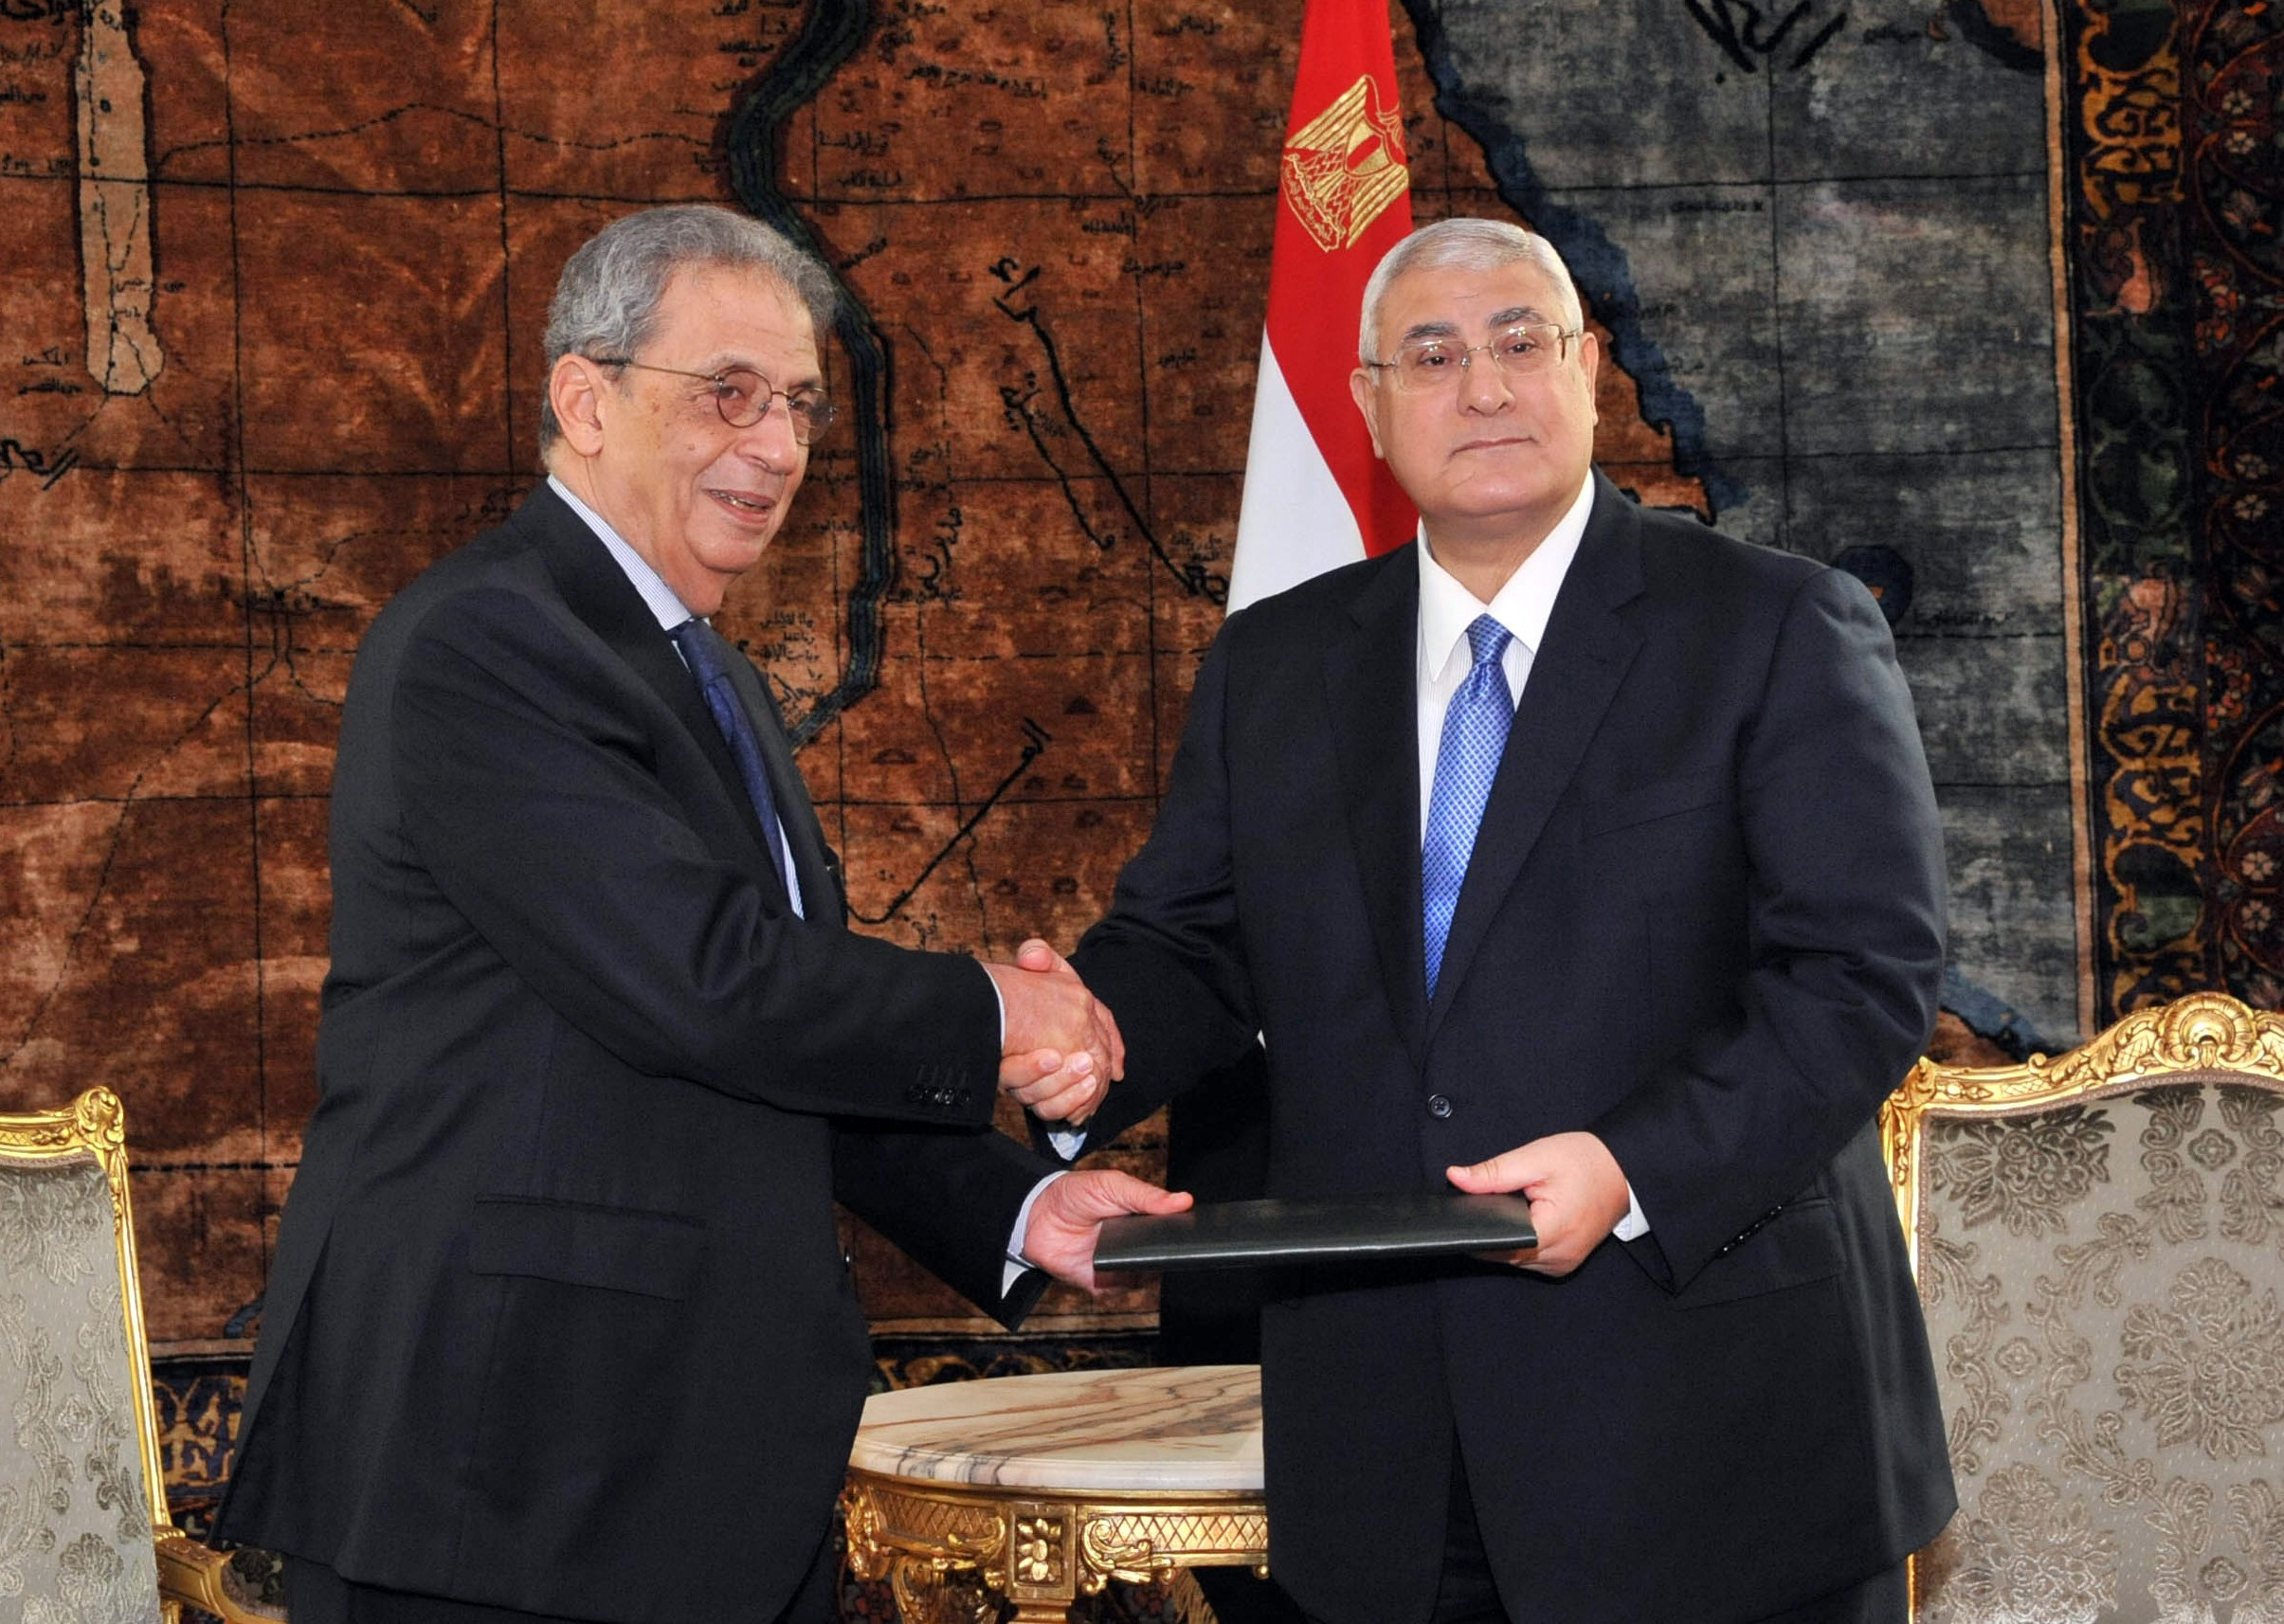 "A handout picture released by Egyptian presidency shows Egypt's interim president Adly Mansour (R) receiving the draft constitution from Amr Mussa, chairman of the Egyptian Constitutional panel at the presidential palace in Cairo on December 3, 2013. The text of a new constitution that would consolidate the power of the army was handed over to Egypt's interim president, giving him a month to call a referendum. AFP PHOTO / HO / EGYPTIAN PRESIDENCY === RESTRICTED TO EDITORIAL USE - MANDATORY CREDIT ""AFP PHOTO/HO/EGYPTIAN PRESIDENCY"" - NO MARKETING NO ADVERTISING CAMPAIGNS - DISTRIBUTED AS A SERVICE TO CLIENTS ==="